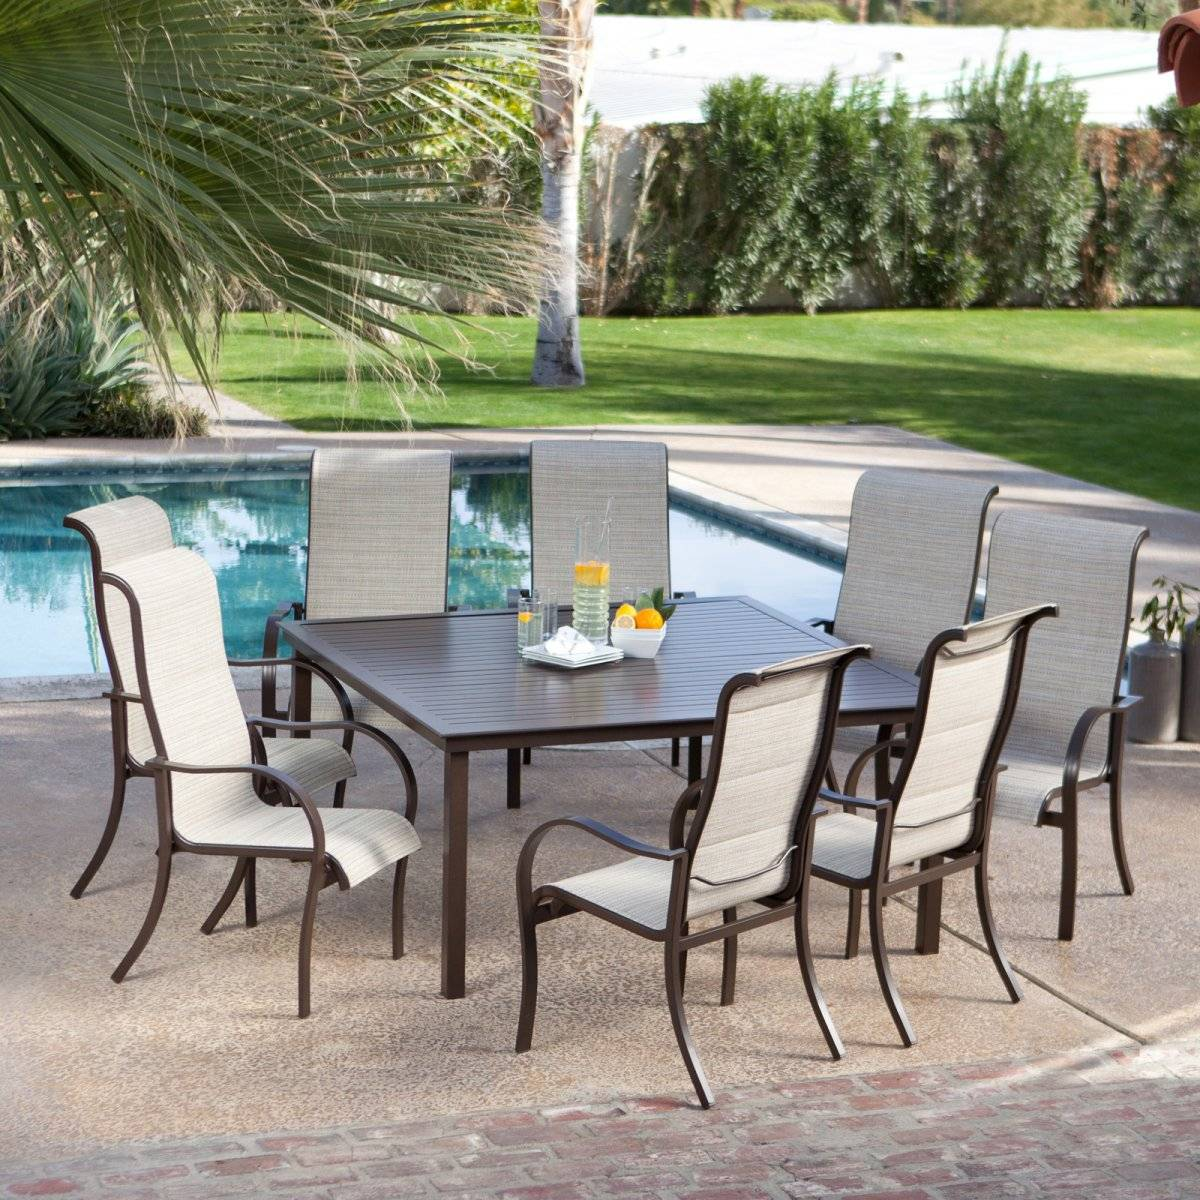 outdoor garden  furniture sling table and chair